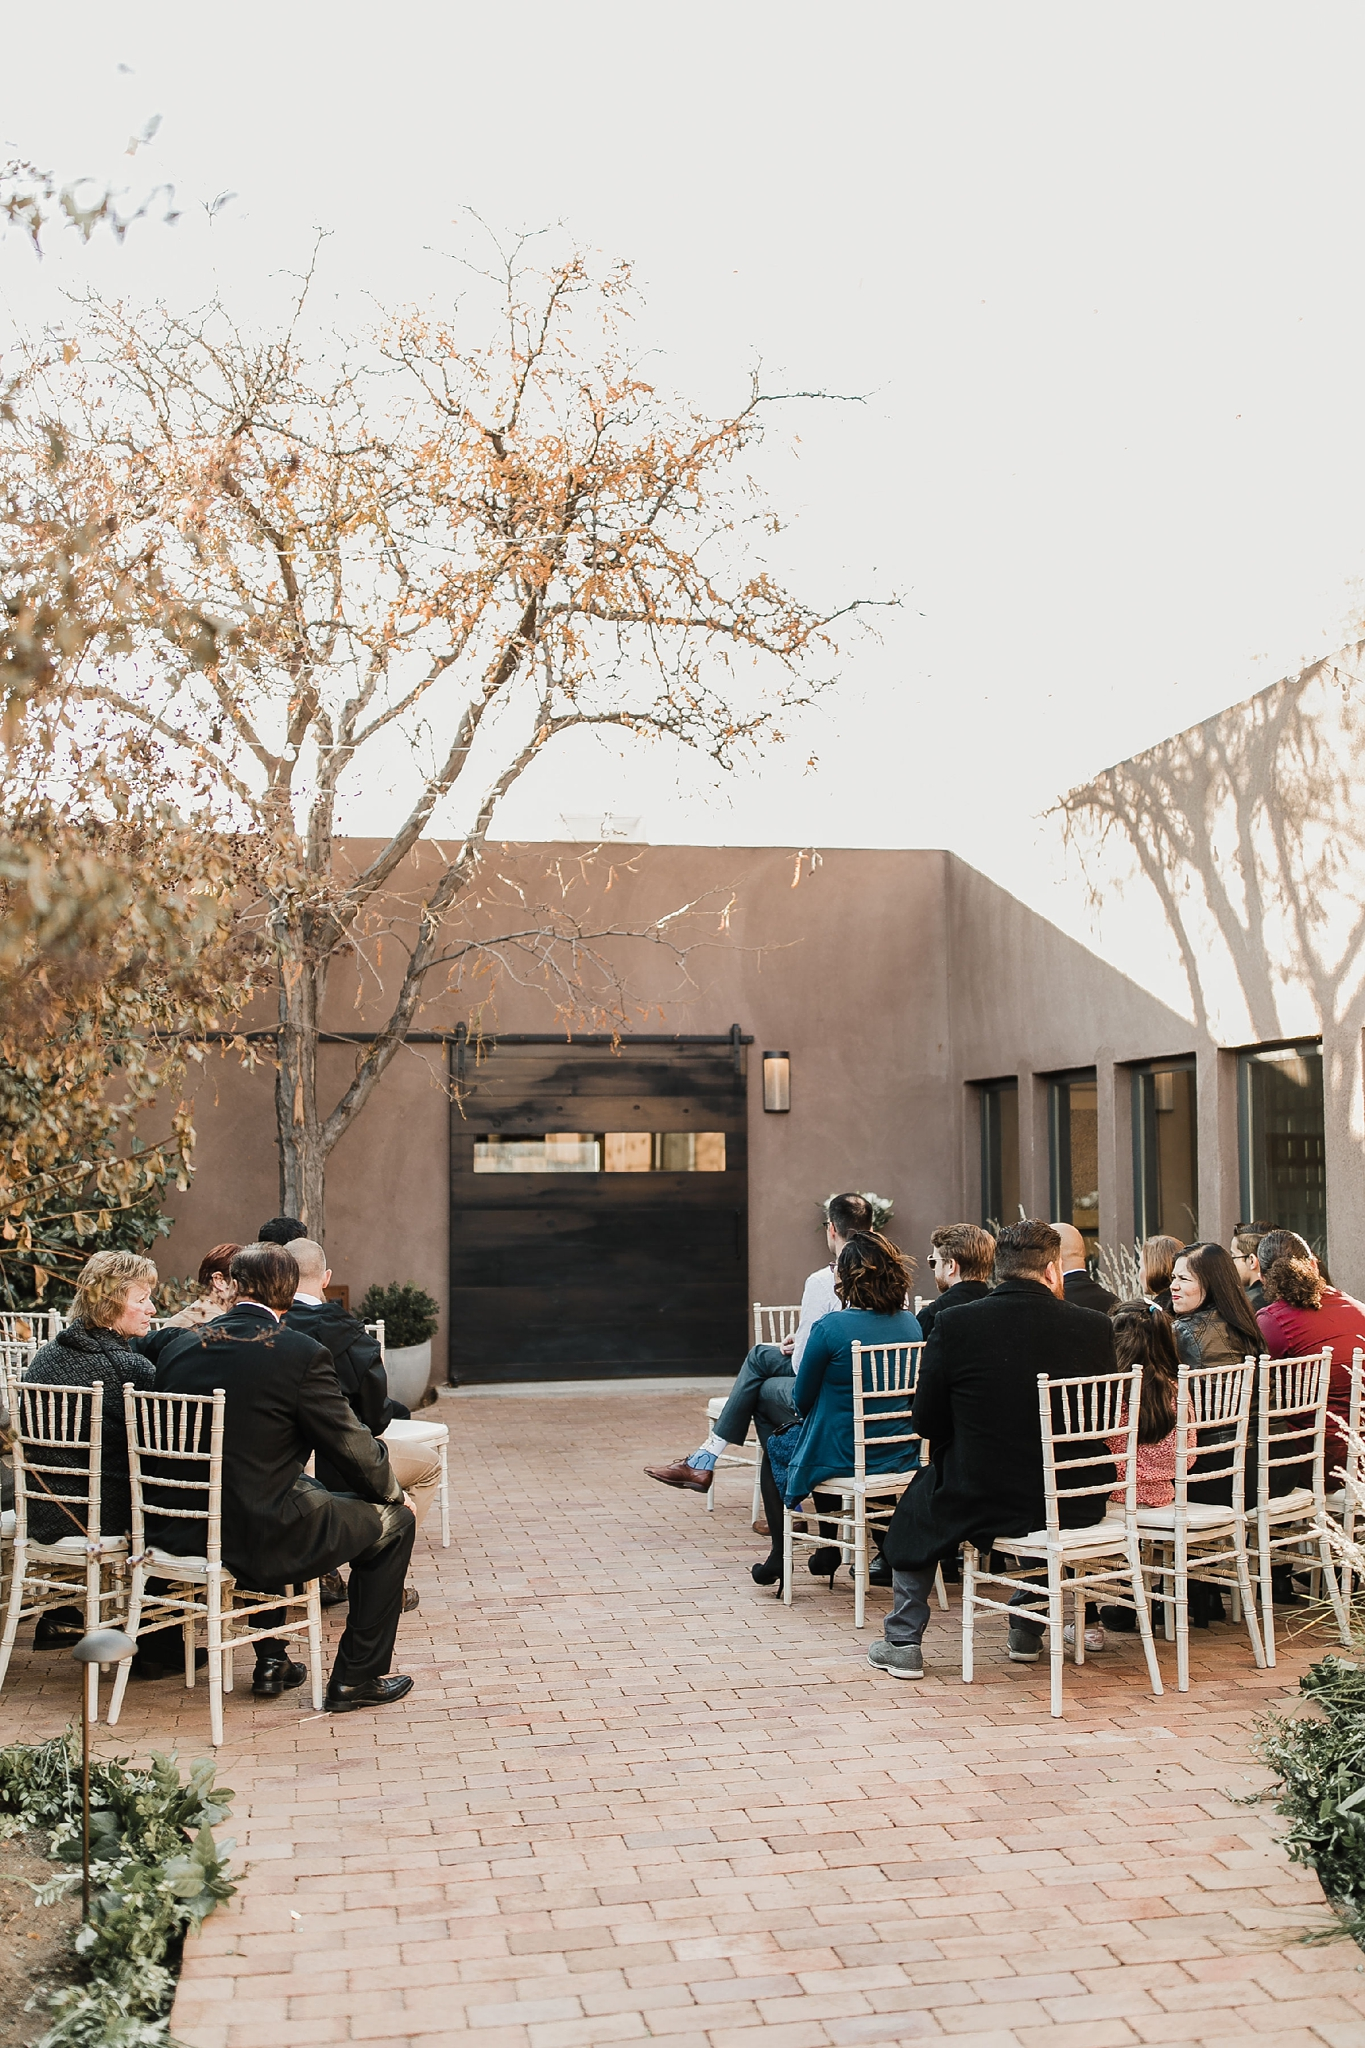 Alicia+lucia+photography+-+albuquerque+wedding+photographer+-+santa+fe+wedding+photography+-+new+mexico+wedding+photographer+-+albuquerque+wedding+-+sarabande+bed+breakfast+-+bed+and+breakfast+wedding_0044.jpg